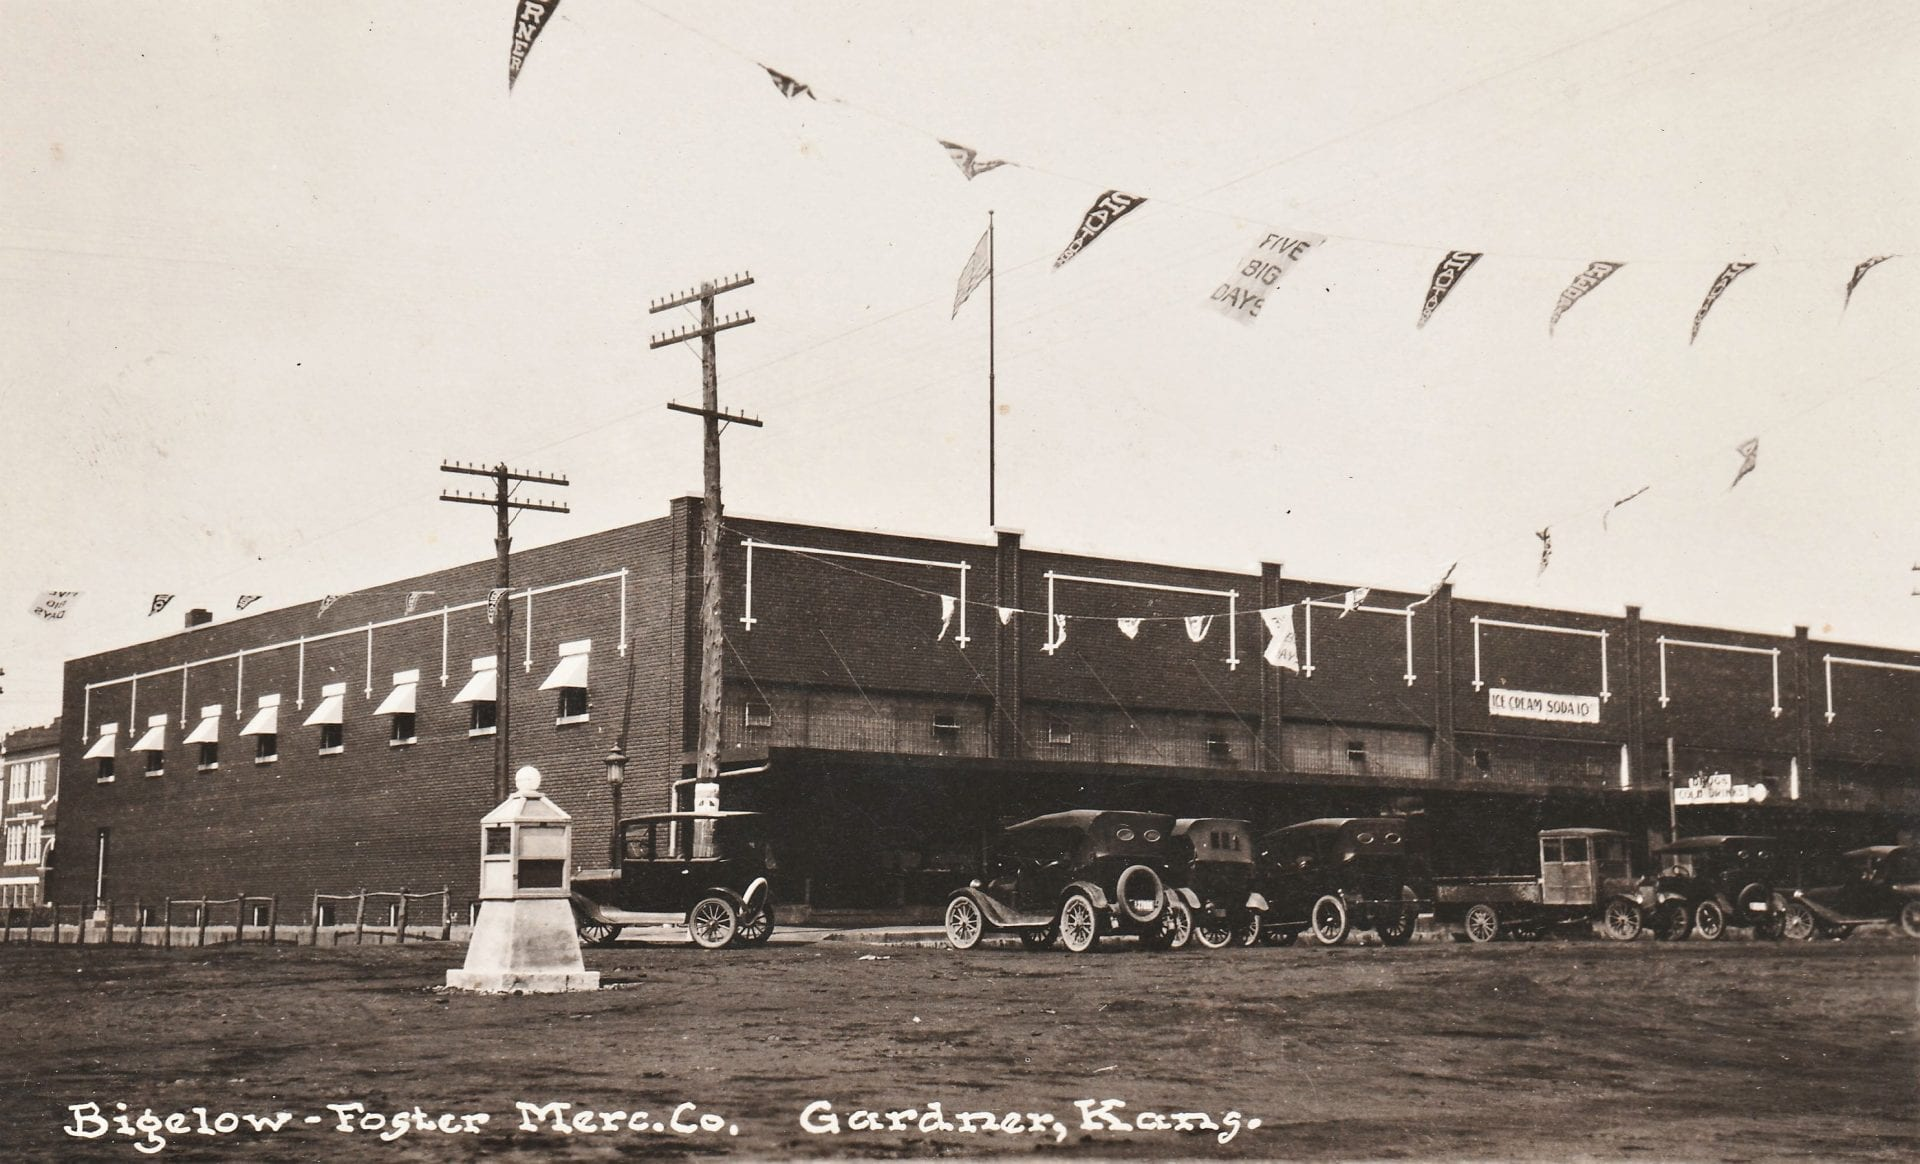 The Bigelow-Foster Mercantile, circa early 1920s